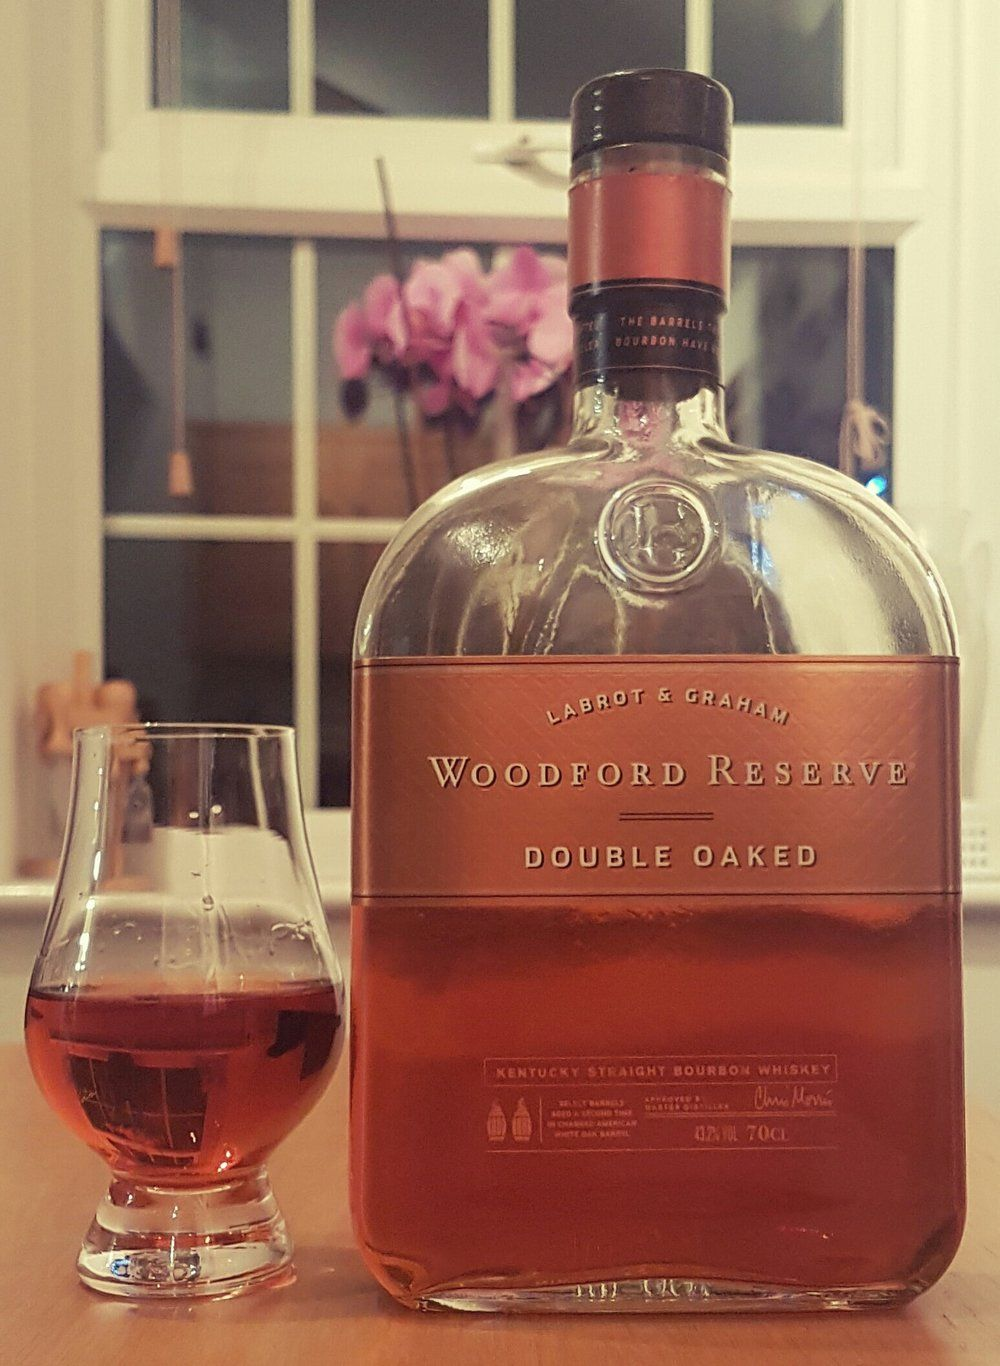 The Woodford Reserve Double Oaked Review Bourbon Gents Woodford Reserve Double Oaked Bourbon Kentucky Straight Bourbon Whiskey